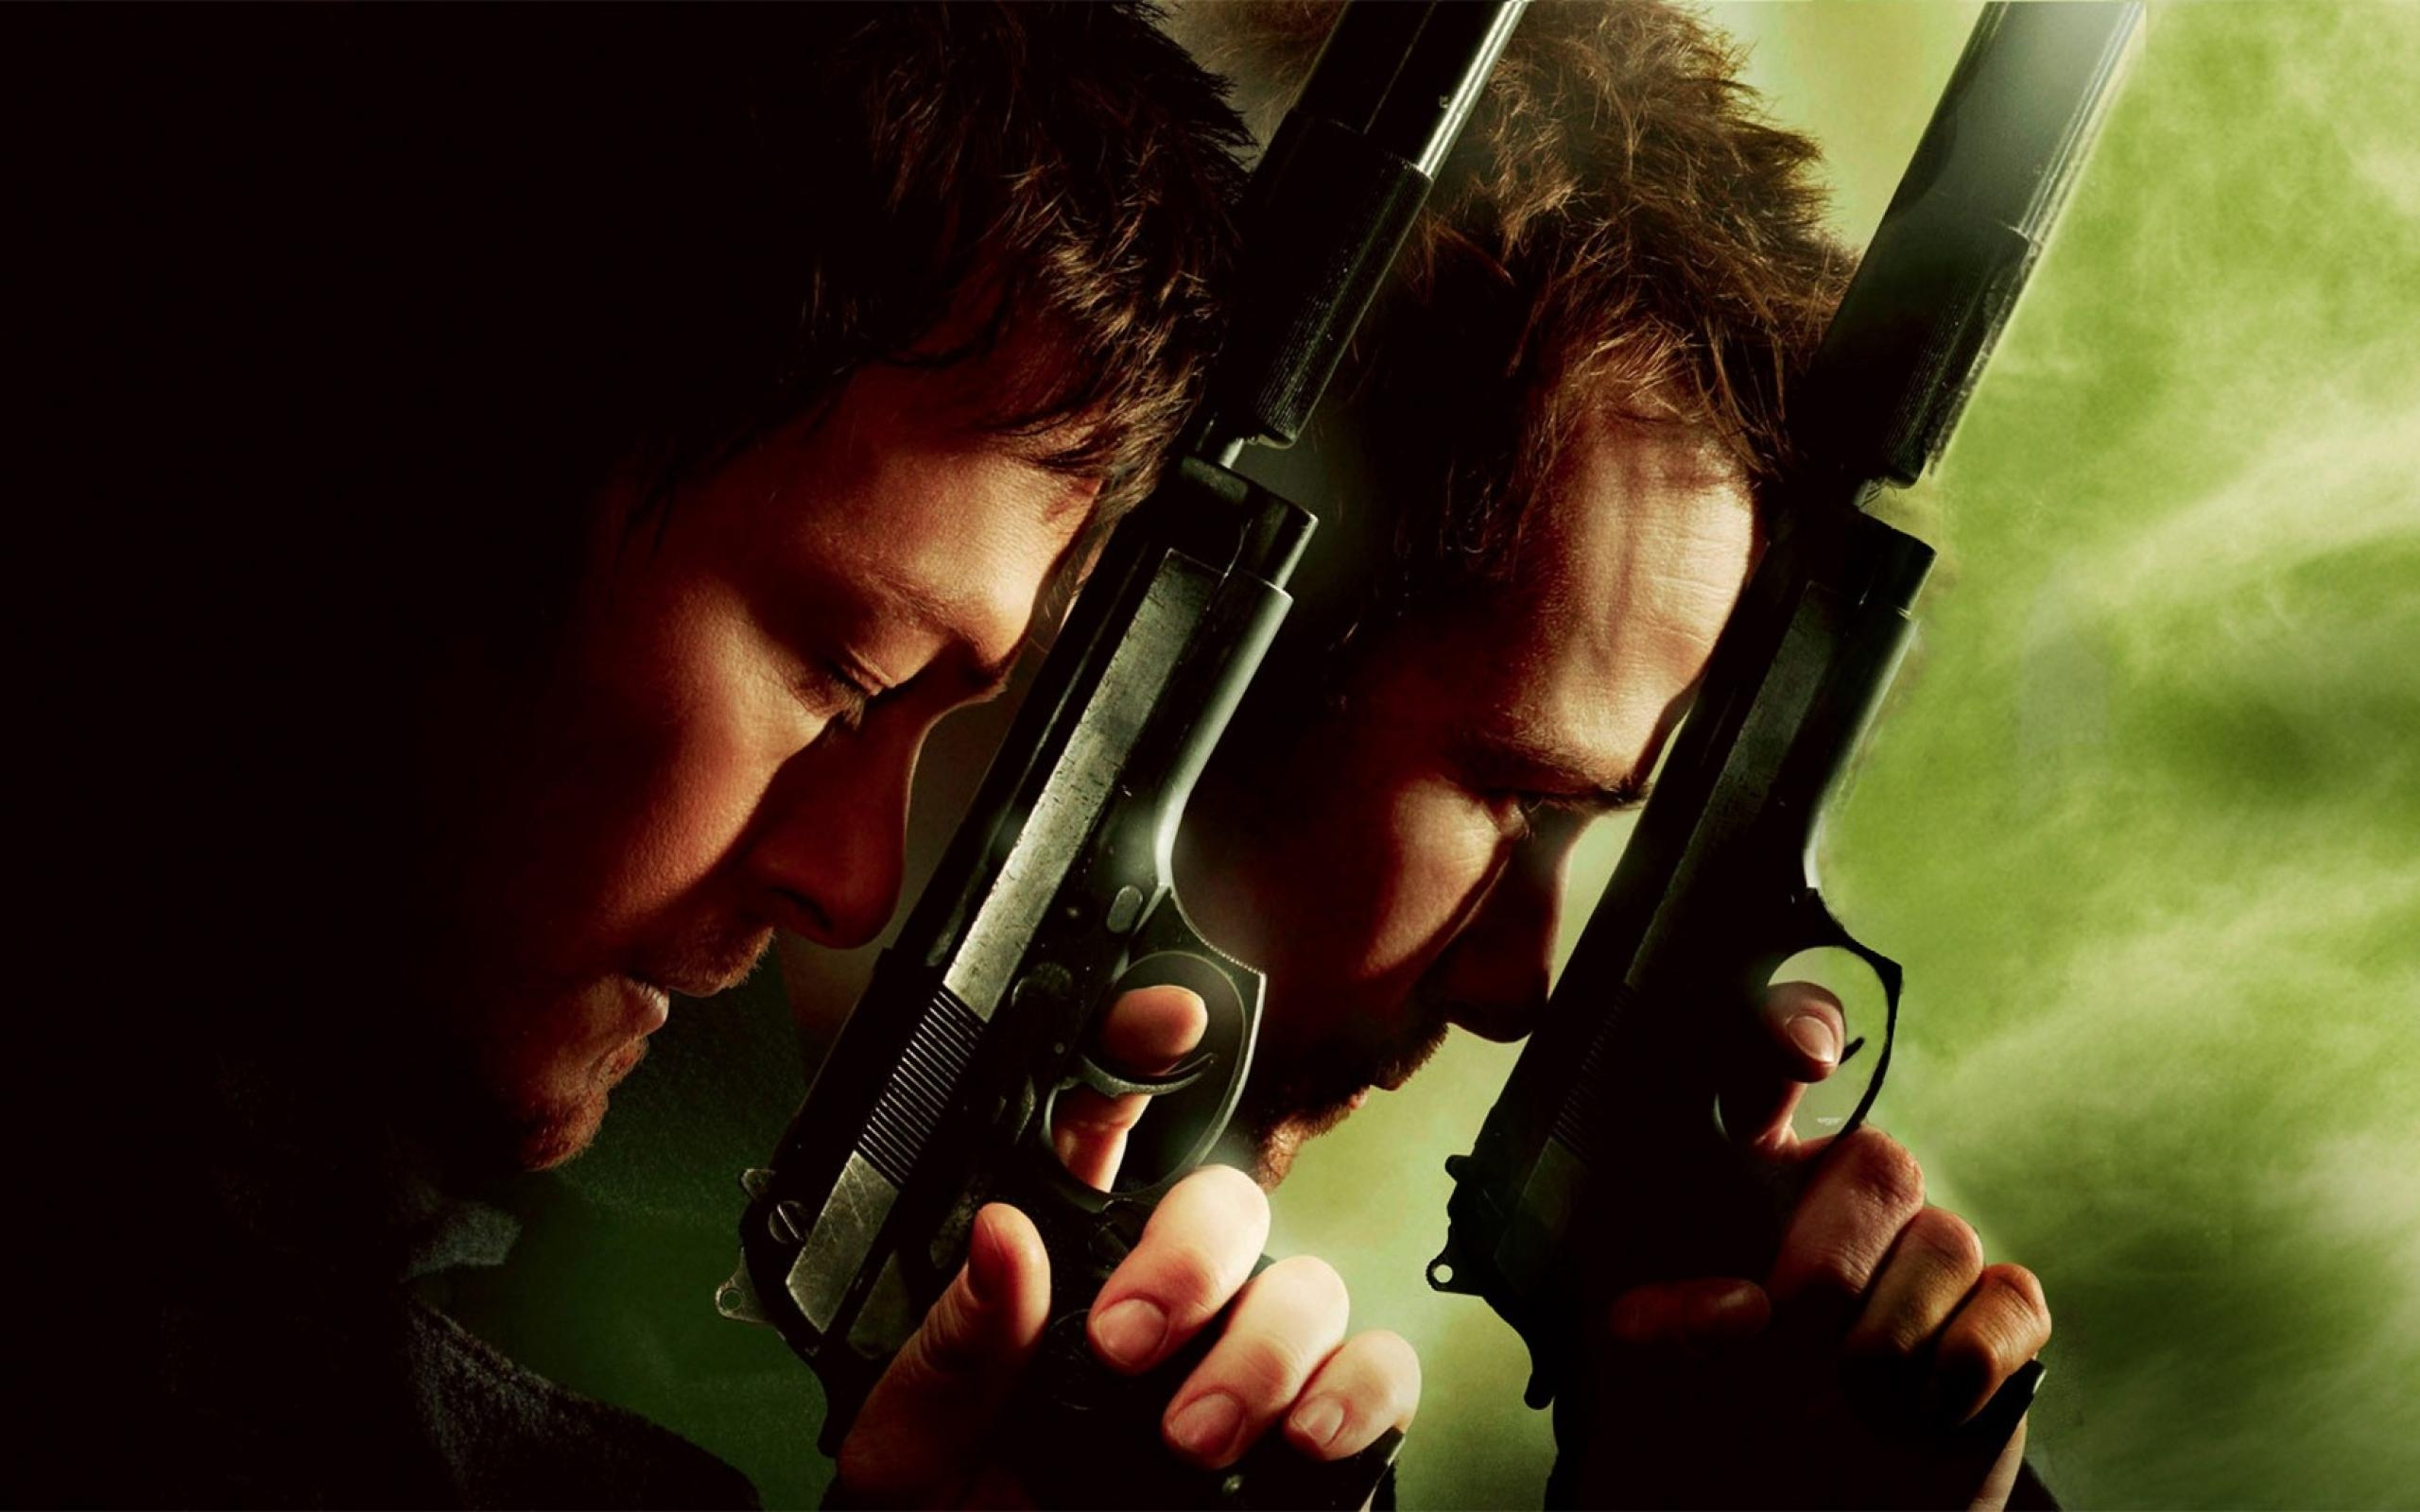 3 The Boondock Saints Ii: All Saints Day Hd Wallpapers intended for Boondock Saints Wall Art